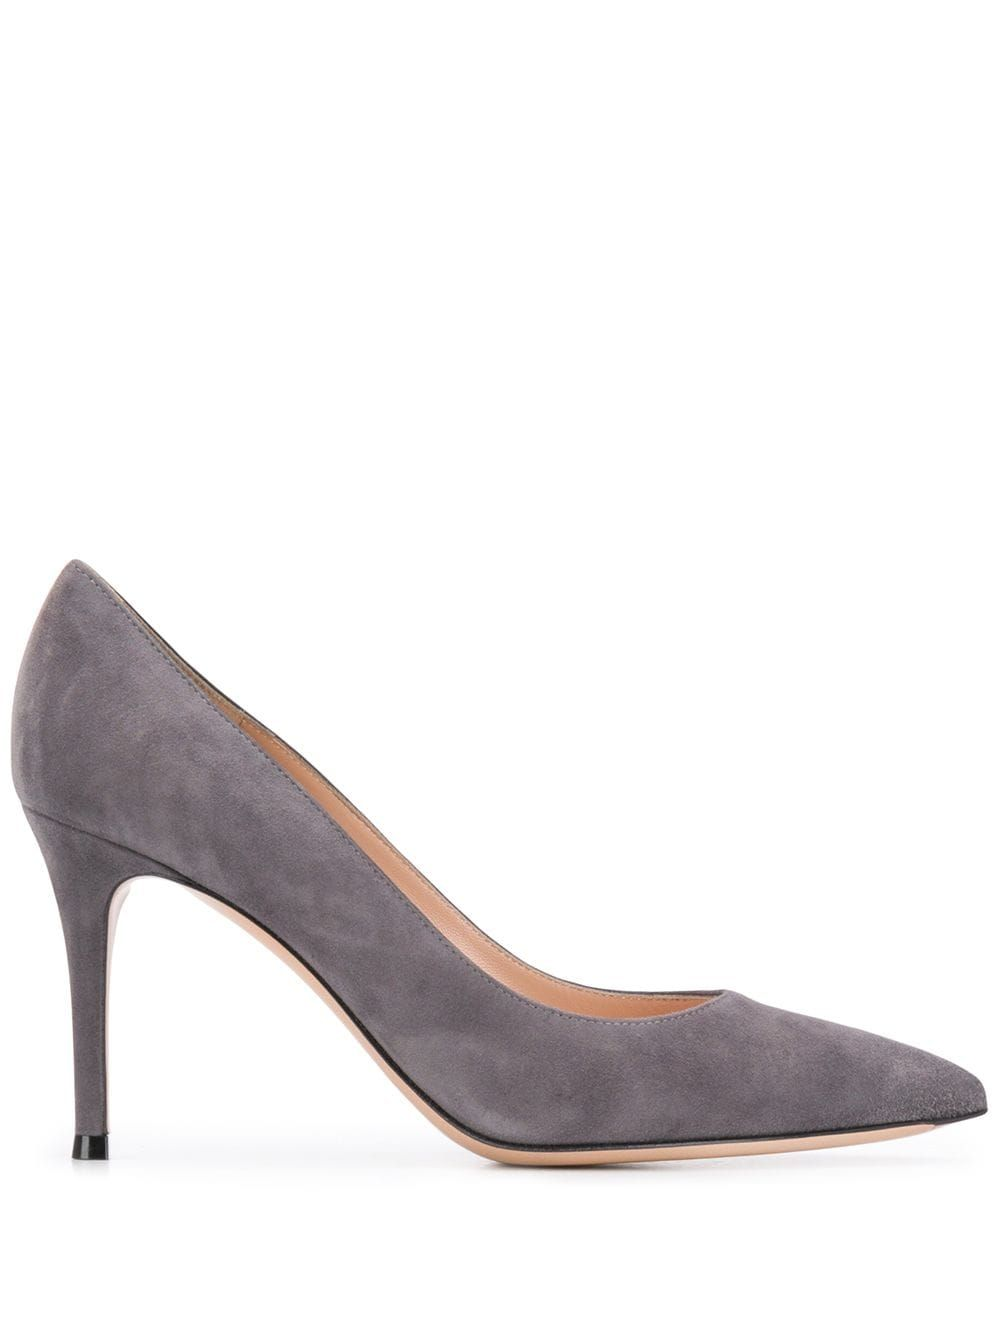 Lapis grey suede pointed toe 90mm pumps from Gianvito Rossi featuring a pointed toe, a slip-on style, a branded insole and a high heel.